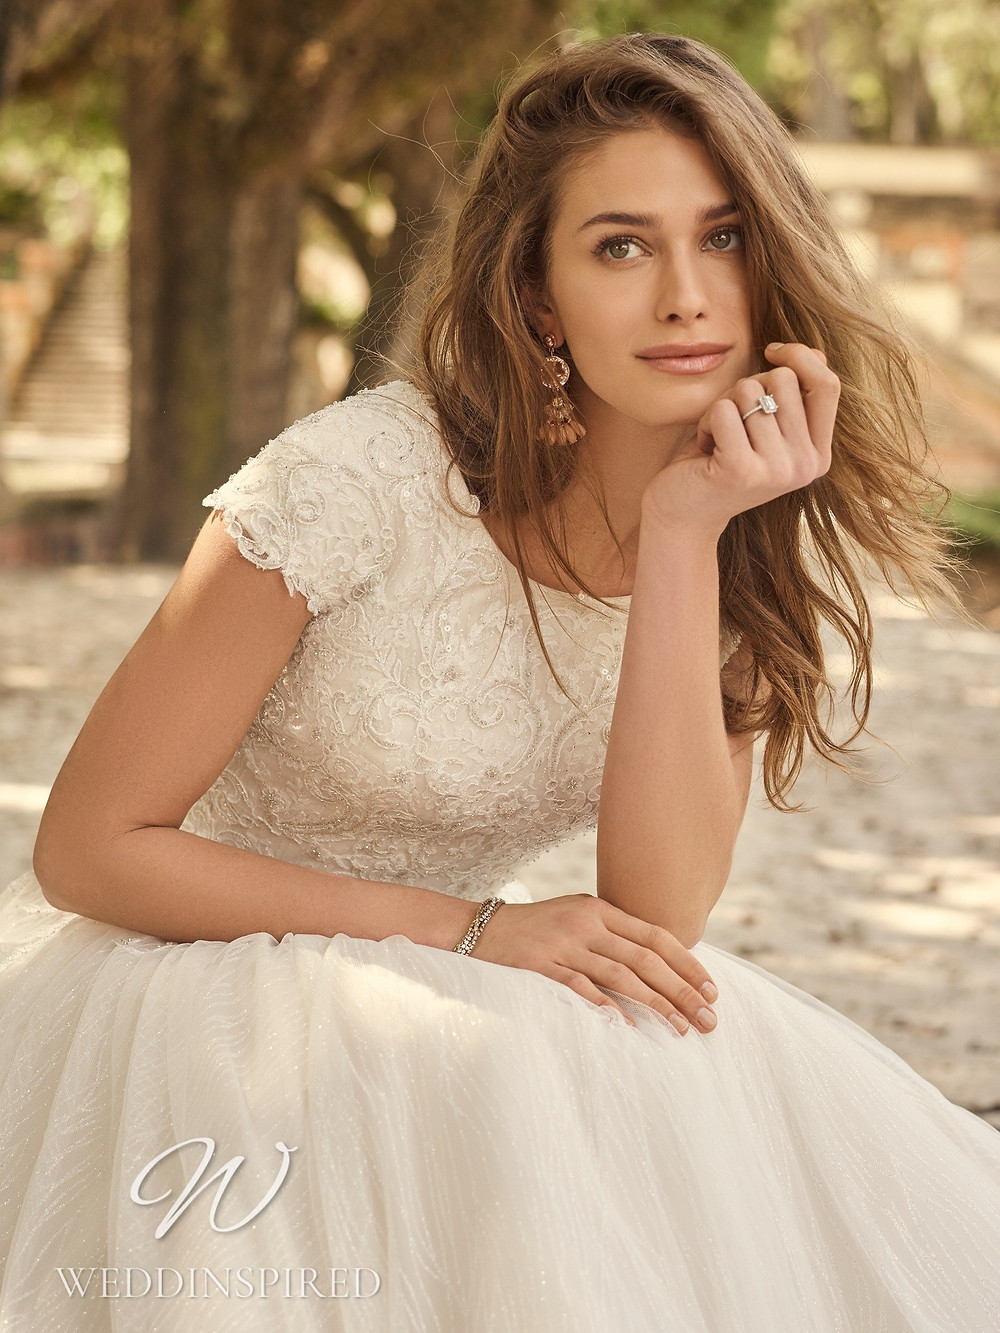 A Maggie Sottero 2021 lace A-line wedding dress with cap sleeves